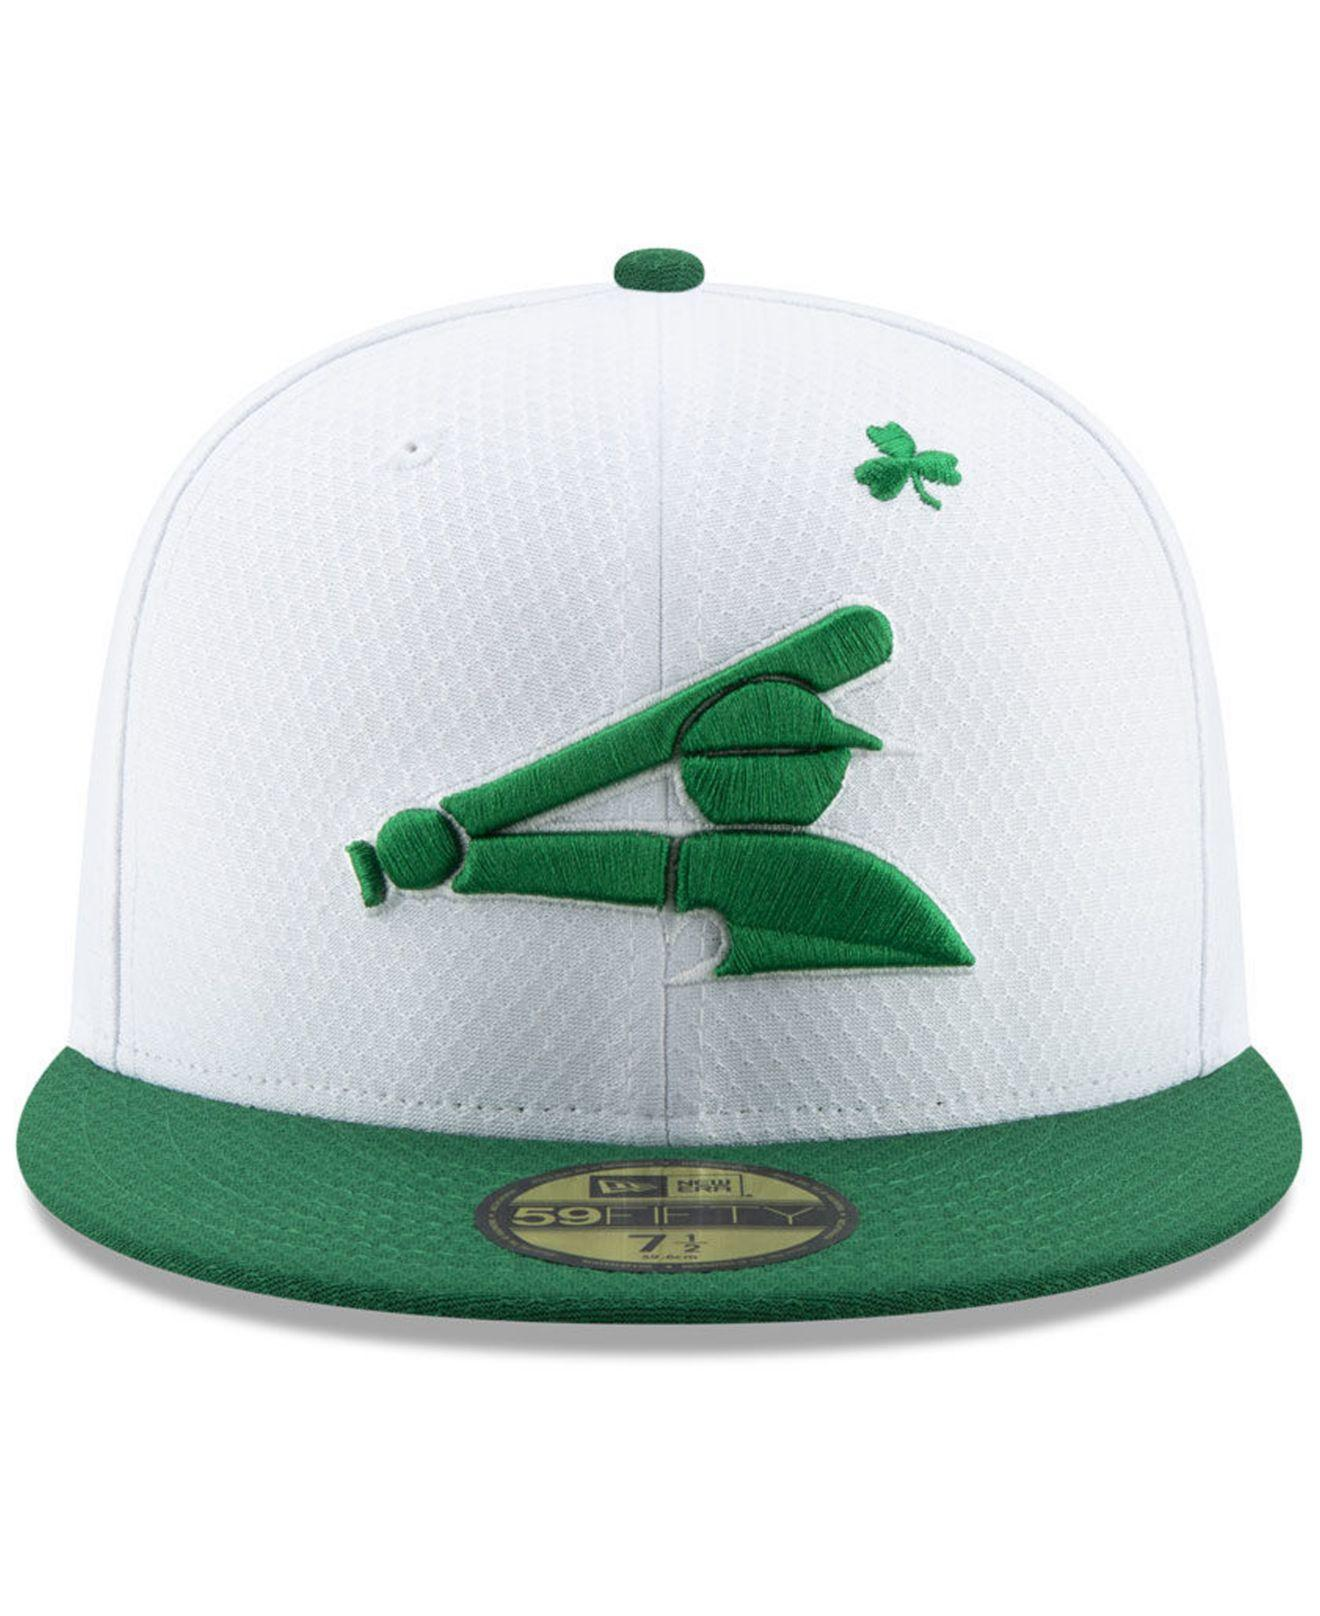 lowest price 8a7a5 2bea7 Lyst - KTZ Chicago White Sox St. Pattys Day 59fifty-fitted Cap in White for  Men